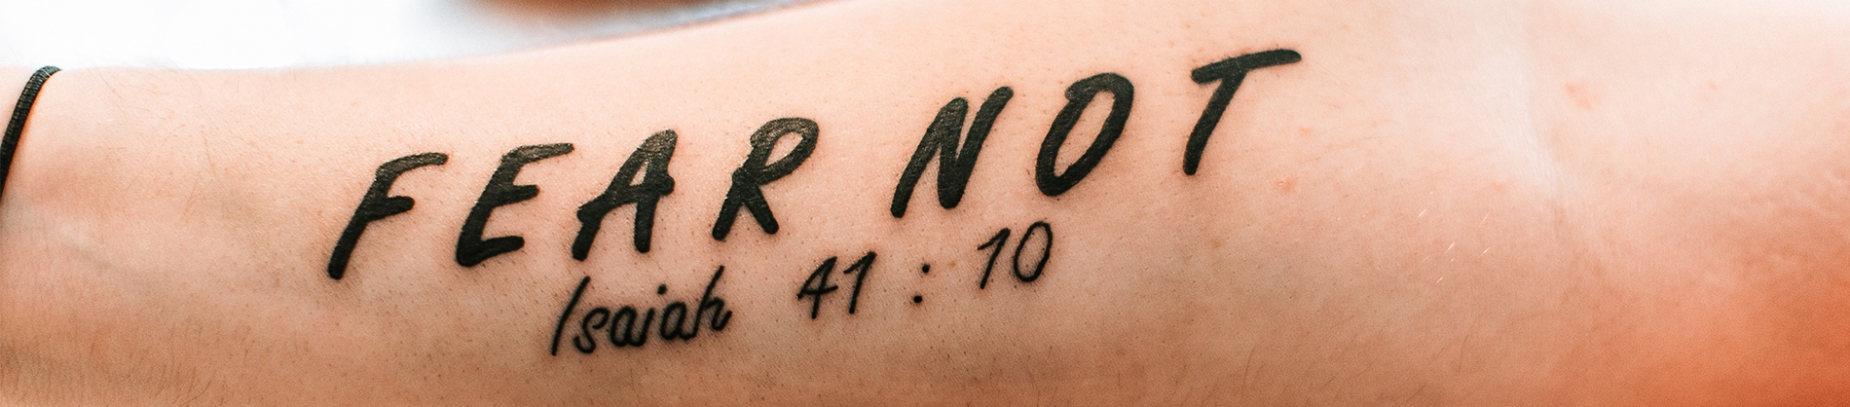 Someones forearm with the words 'Fear not Isaiah 41:10' written on